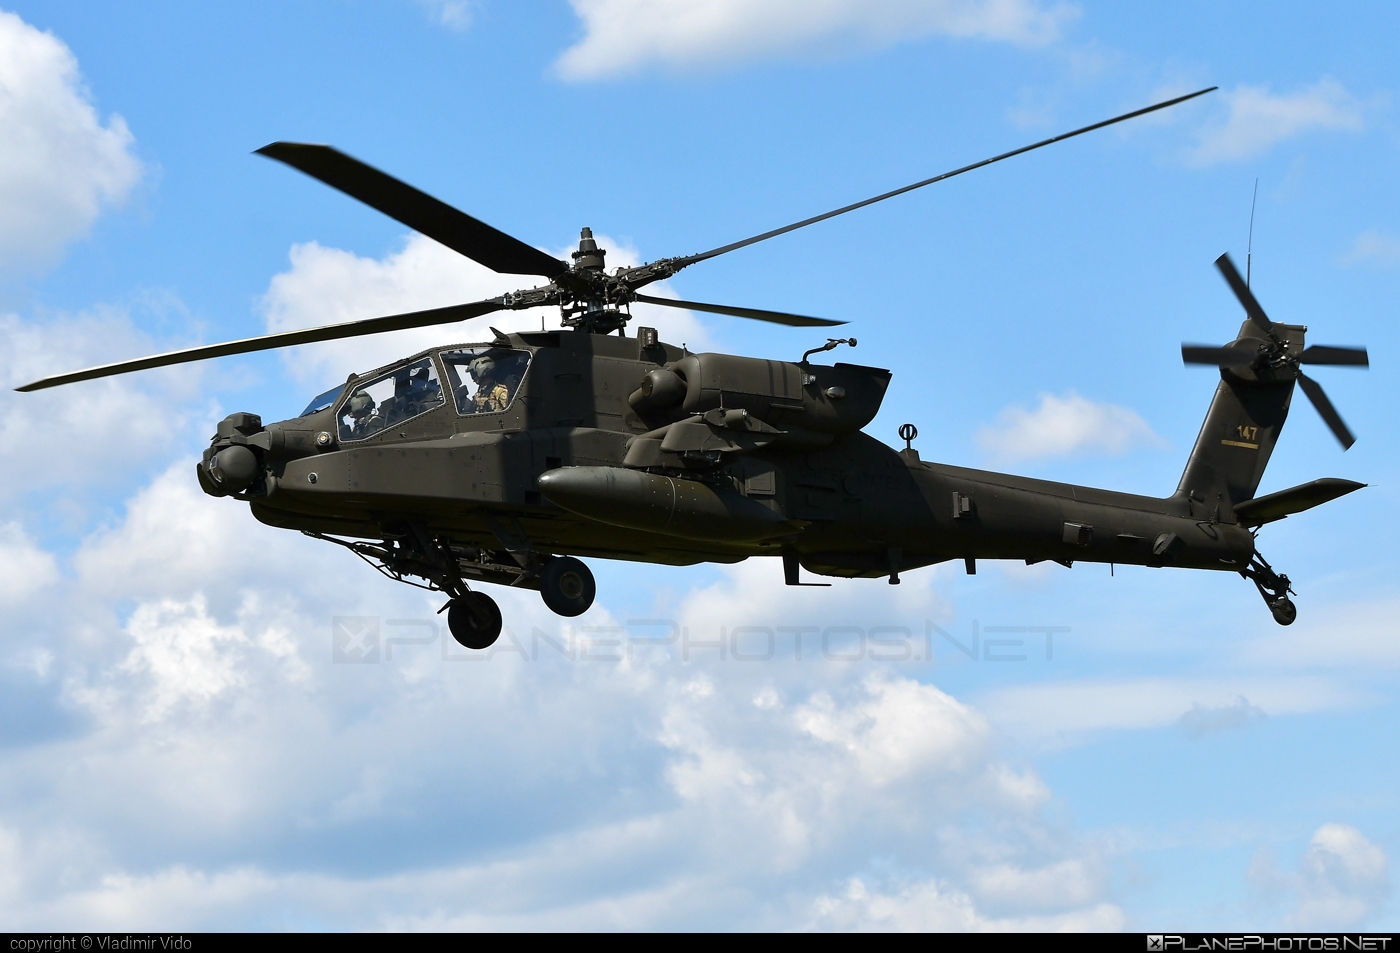 Boeing AH-64E Apache Guardian - 17-03147 operated by US Army #ah64 #ah64apache #ah64e #ah64eapache #ah64eapacheguardian #apacheguardian #boeing #usarmy